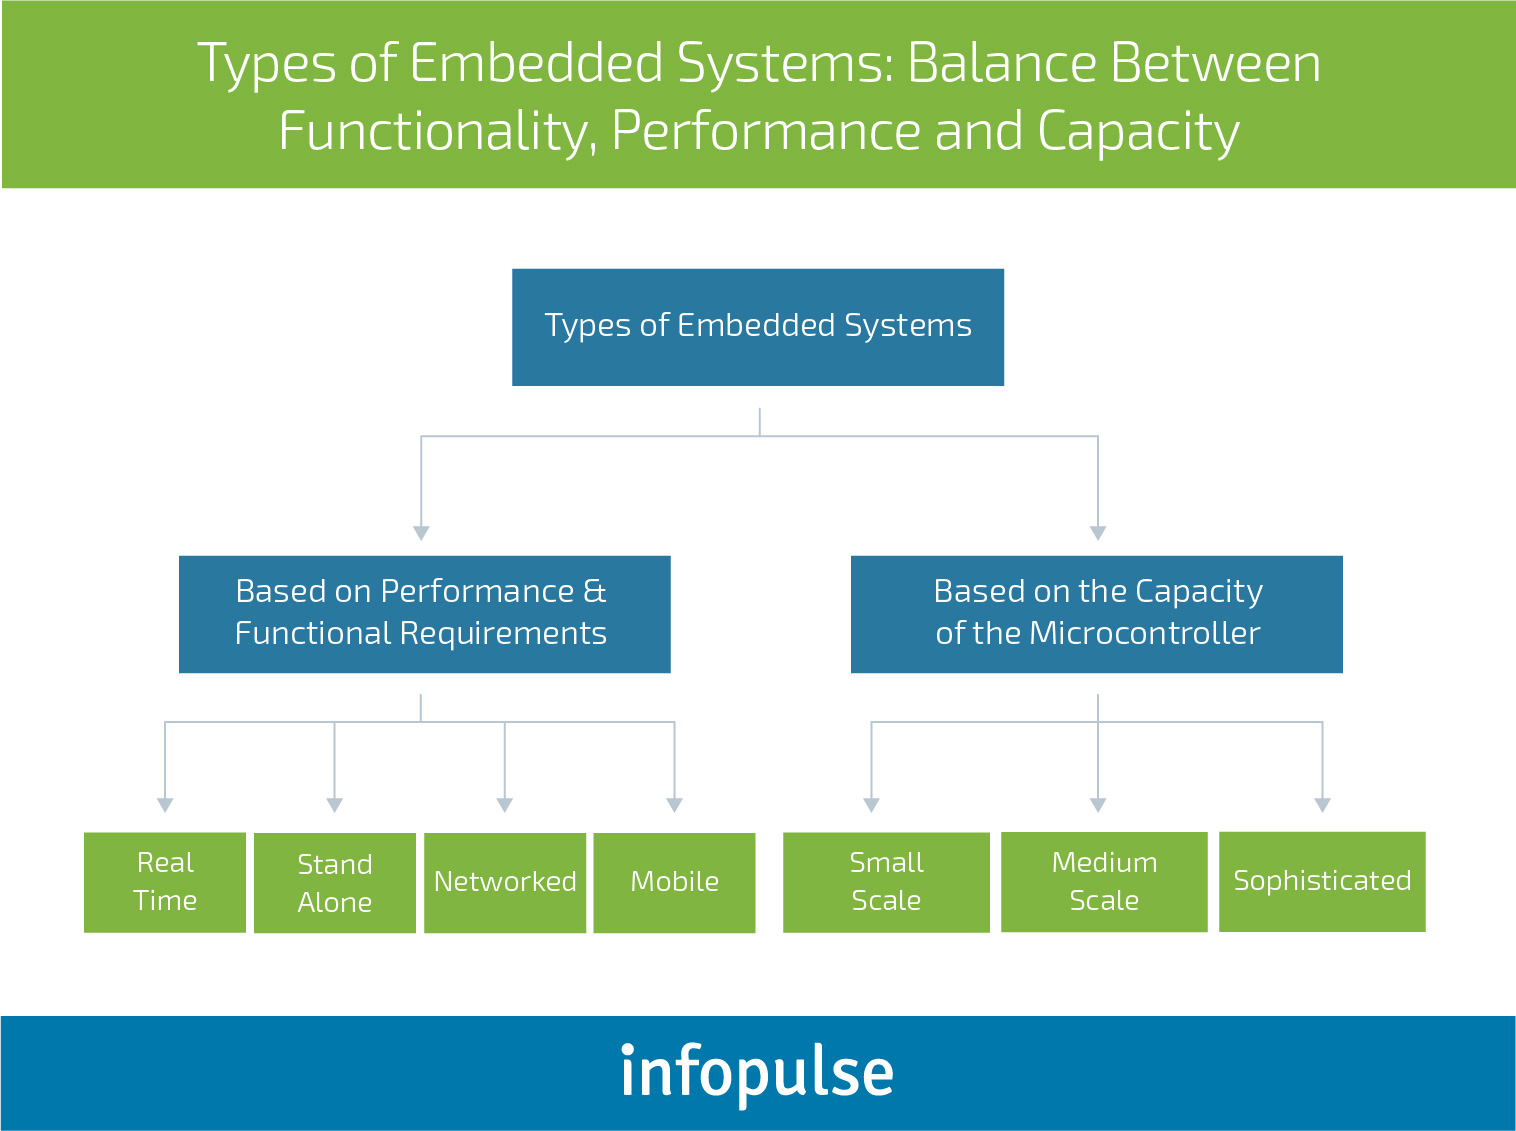 Challenges and Issues of Embedded Software Development - Infopulse - 2